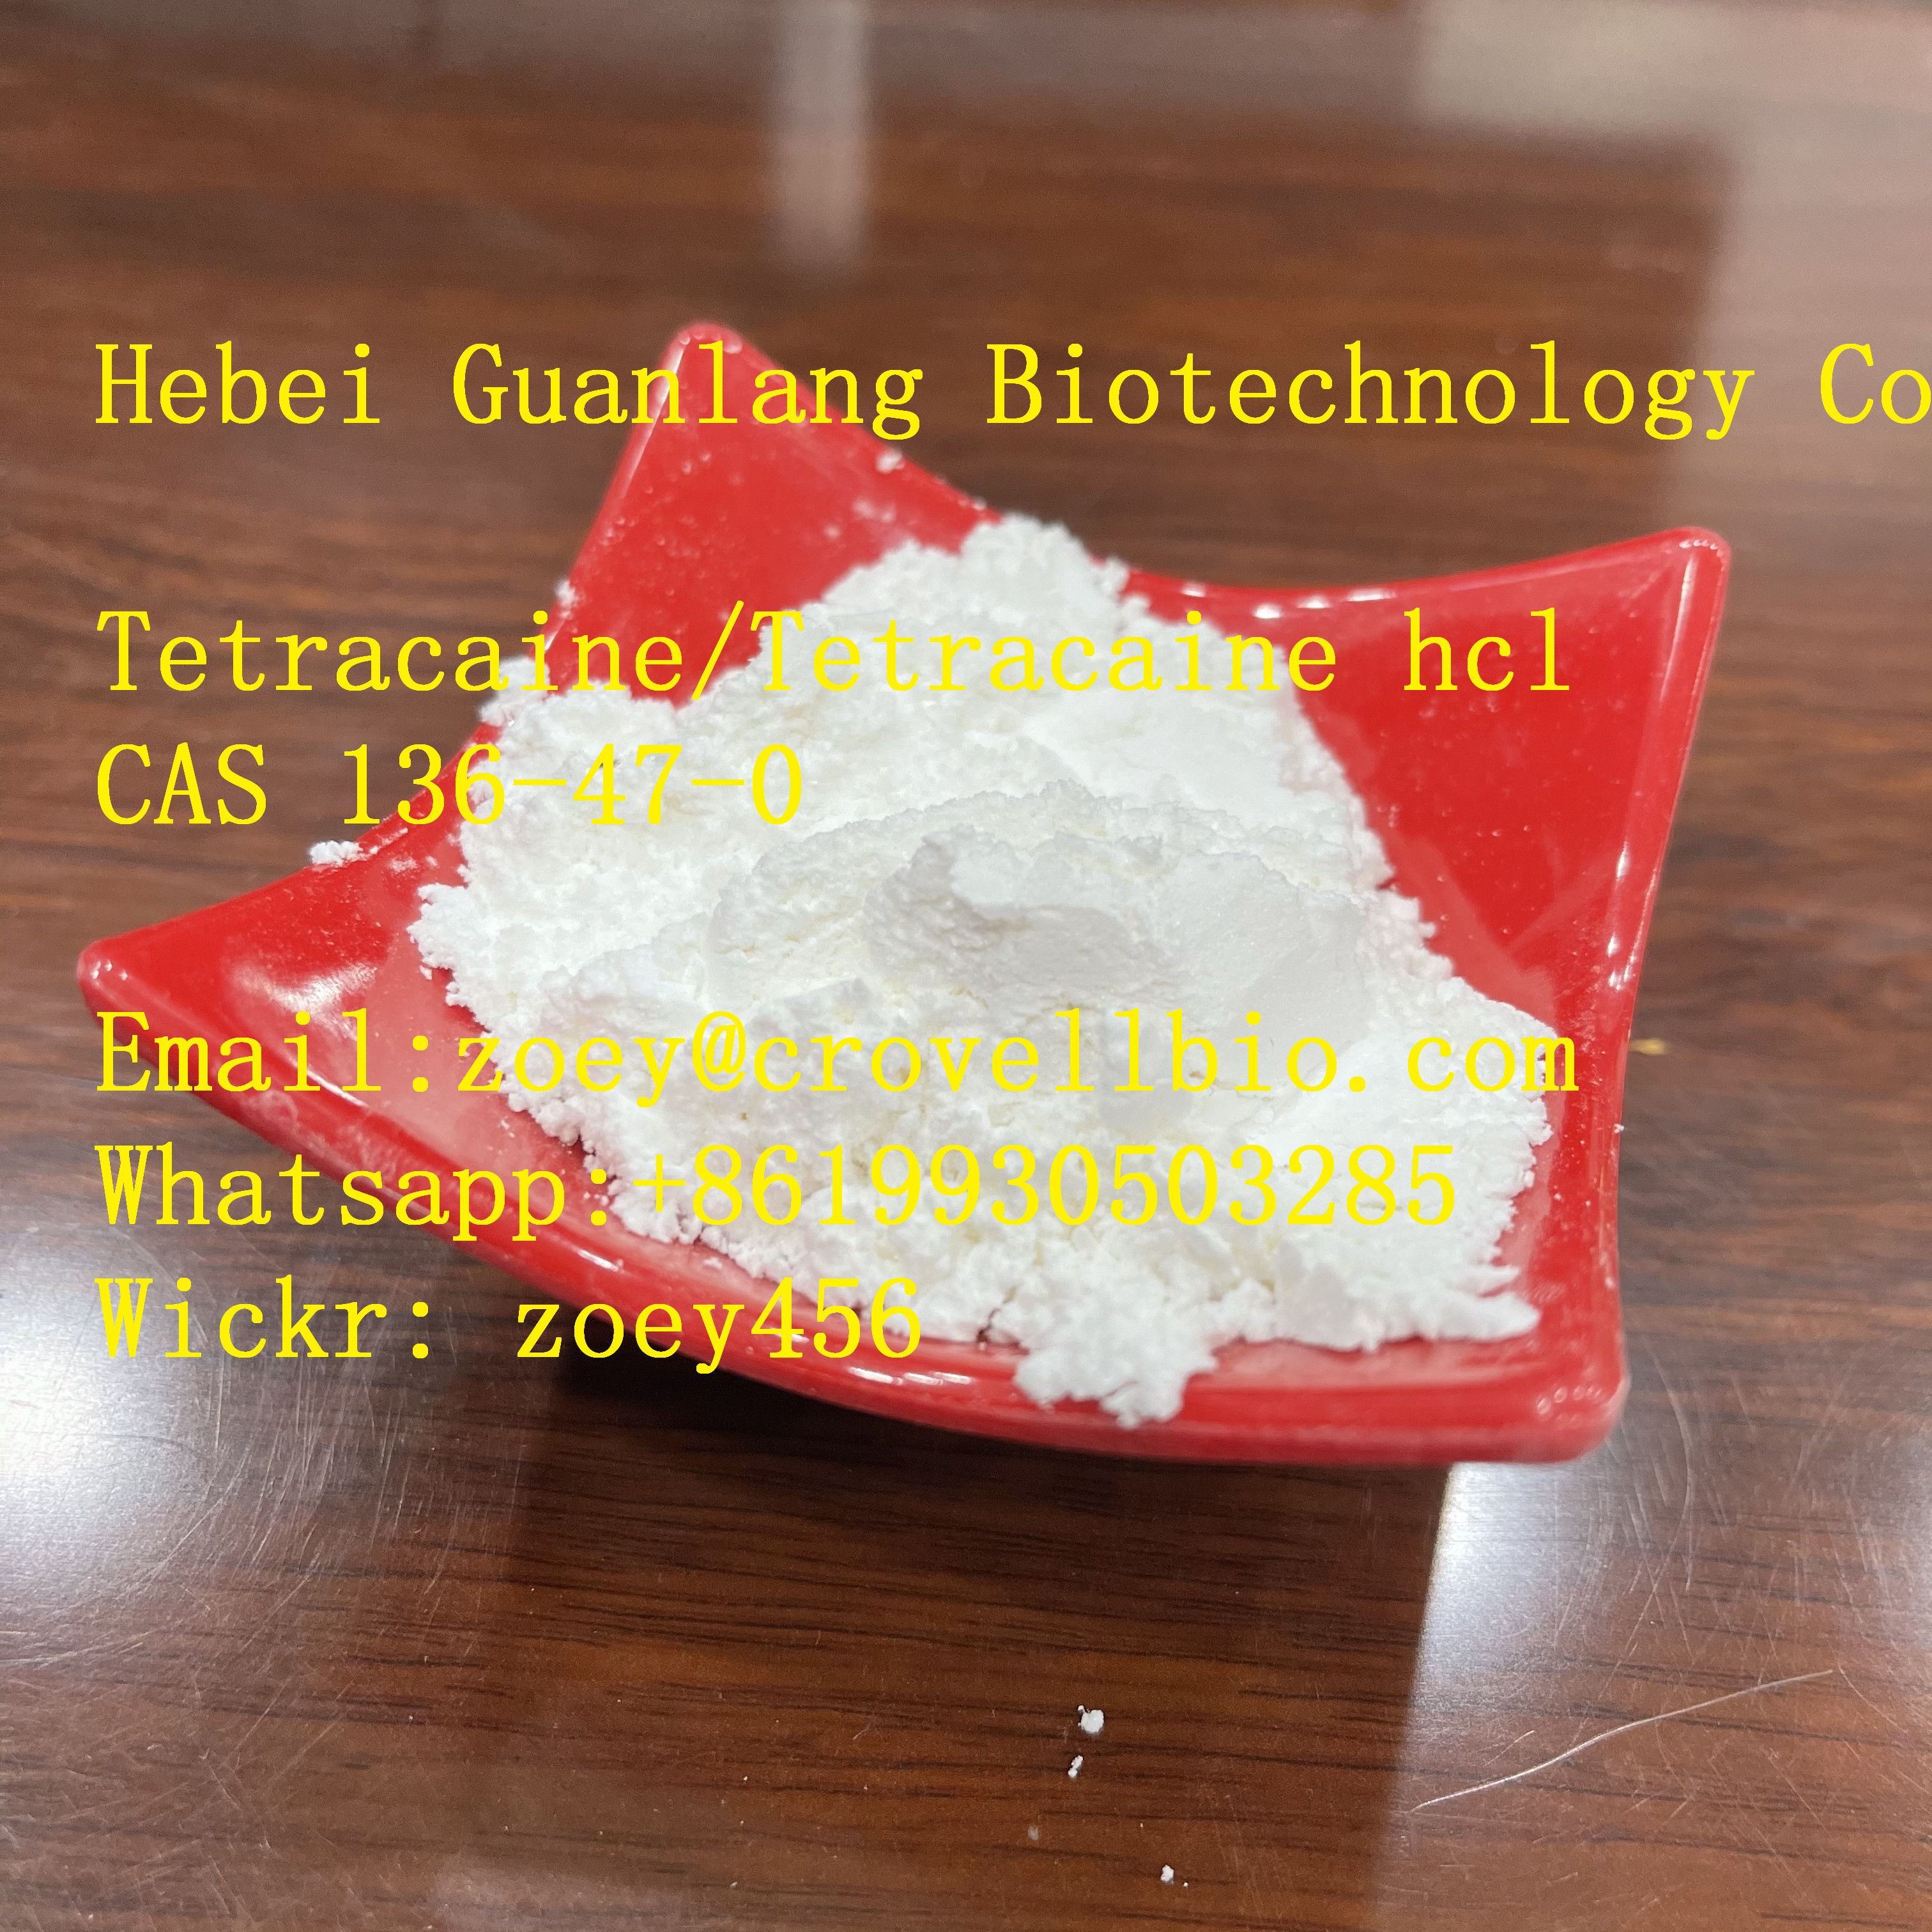 Safe delivery Tetracaine hydrochloride supplier in China CAS 136-47-0 ,China,Business,Business For Sale,77traders